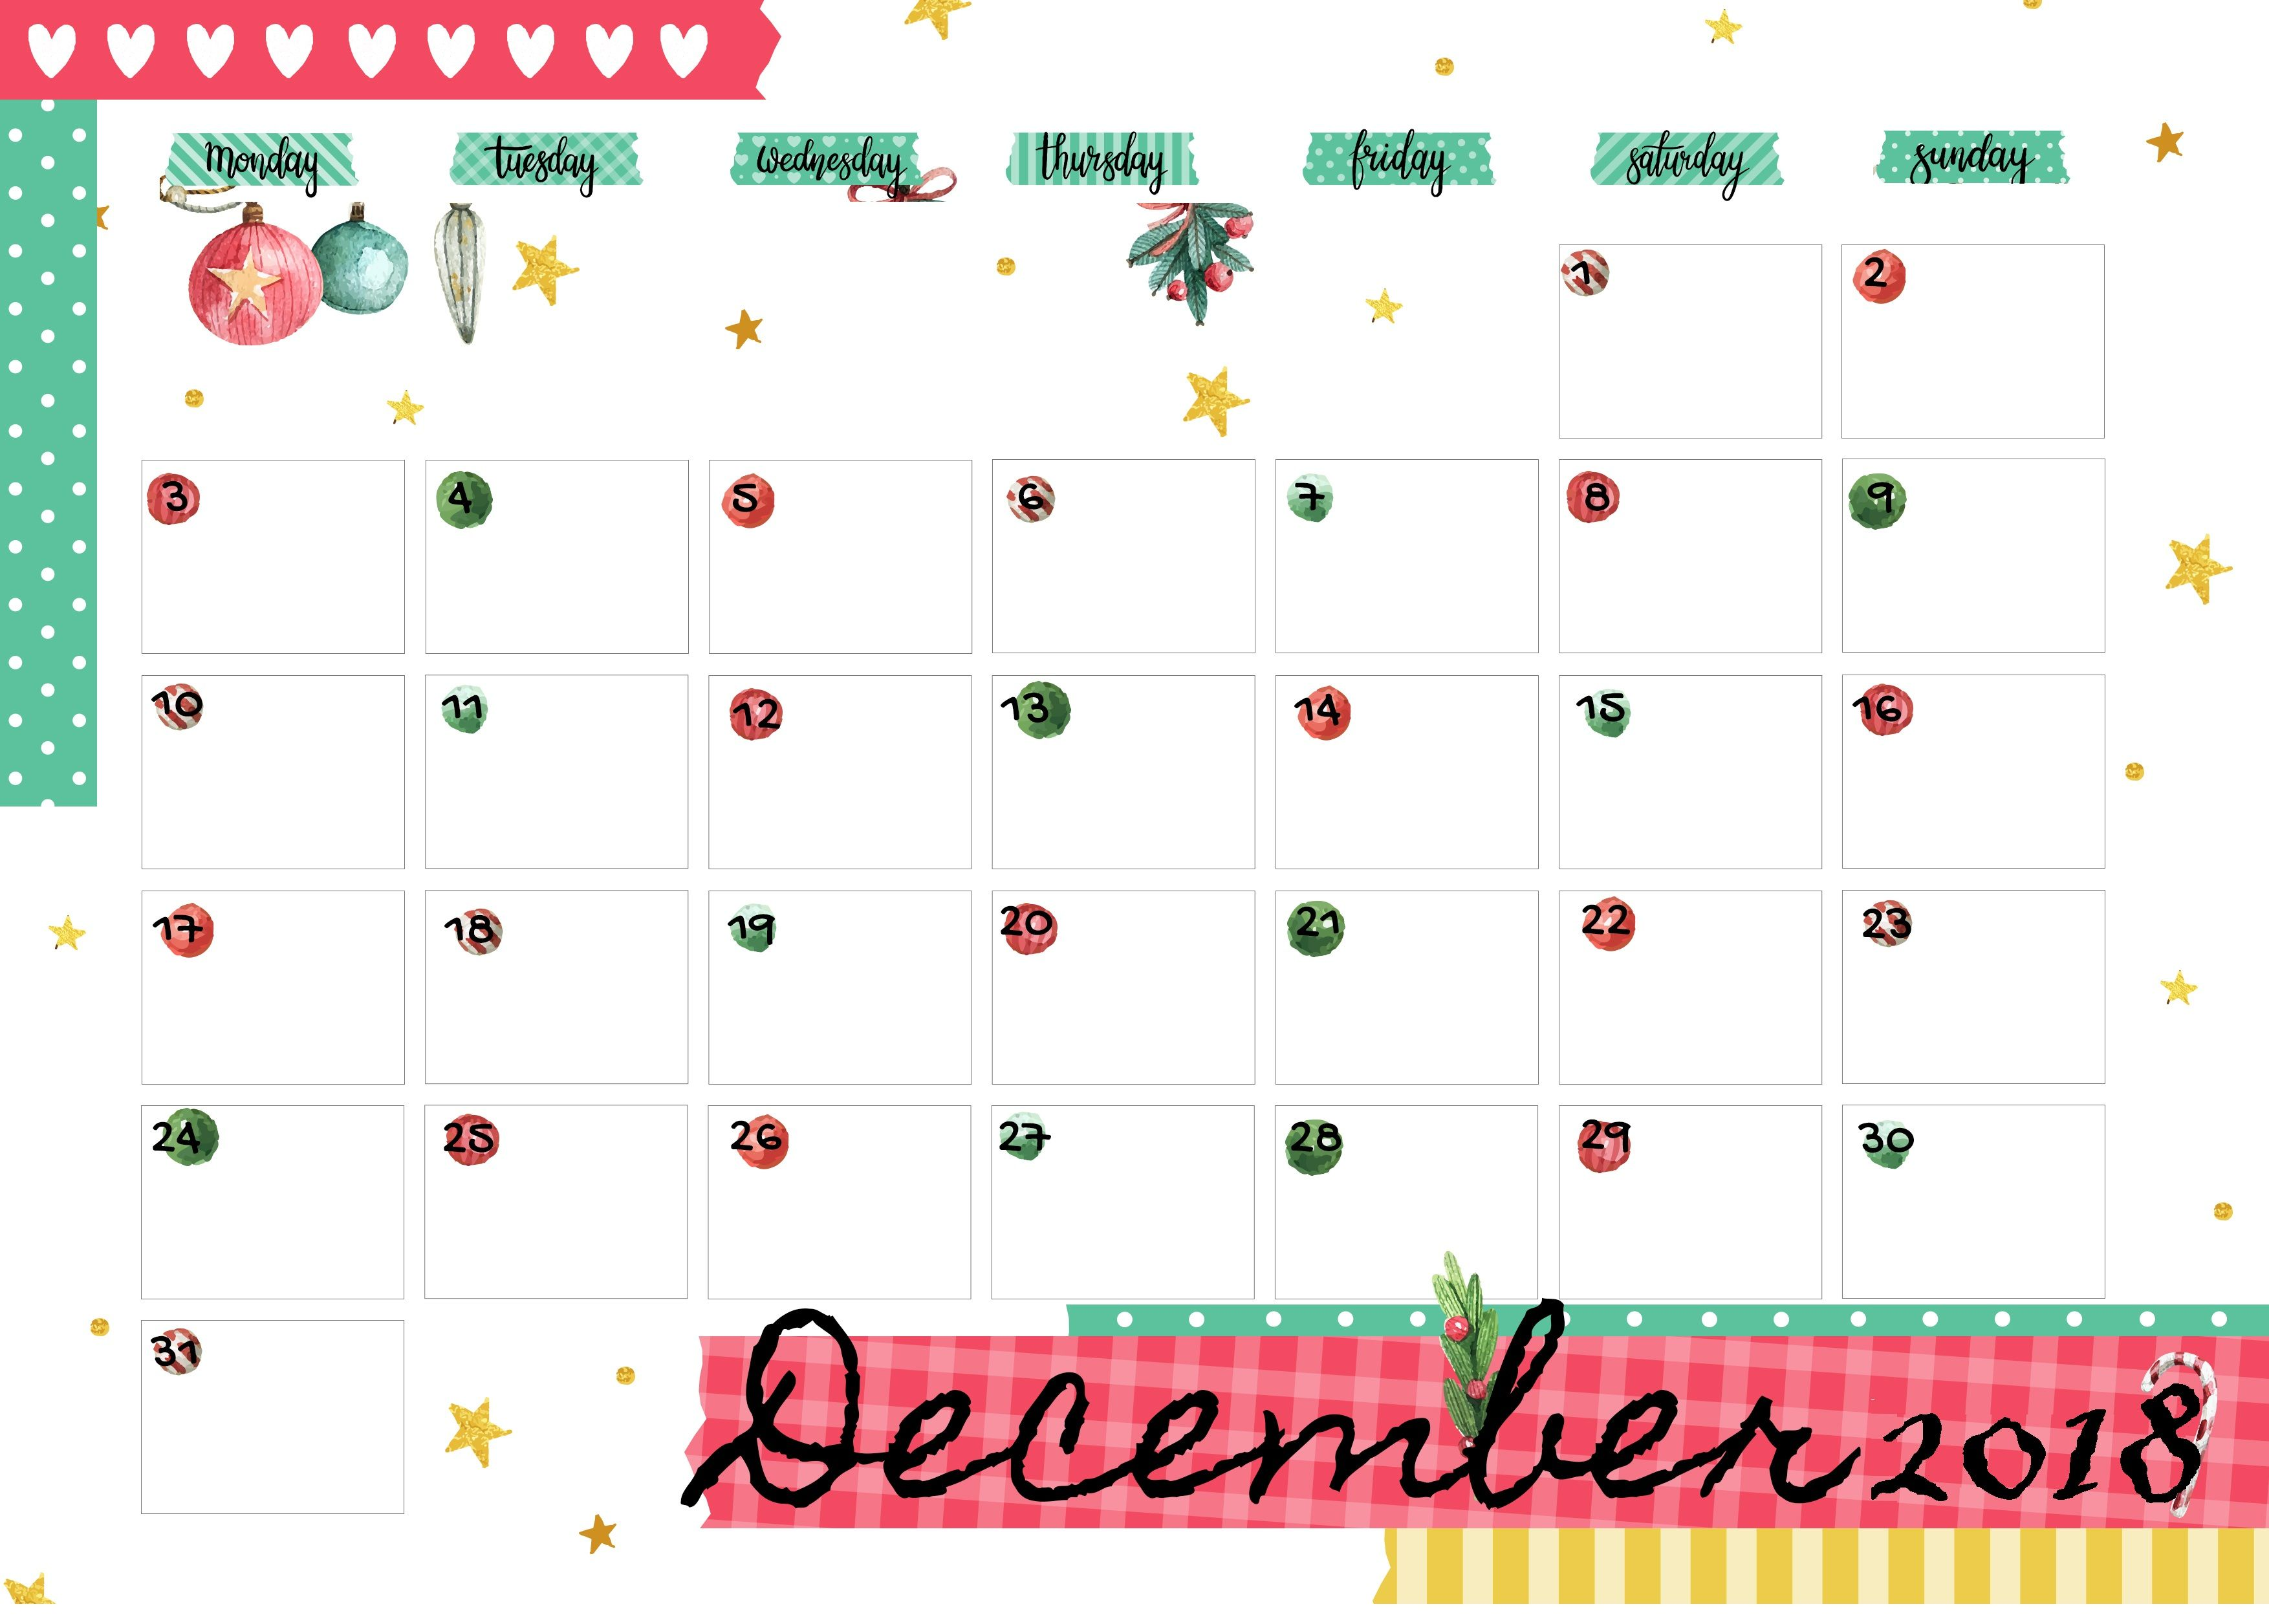 printable december 2018 calendar templates for personal and professional work maxcalendars. Black Bedroom Furniture Sets. Home Design Ideas